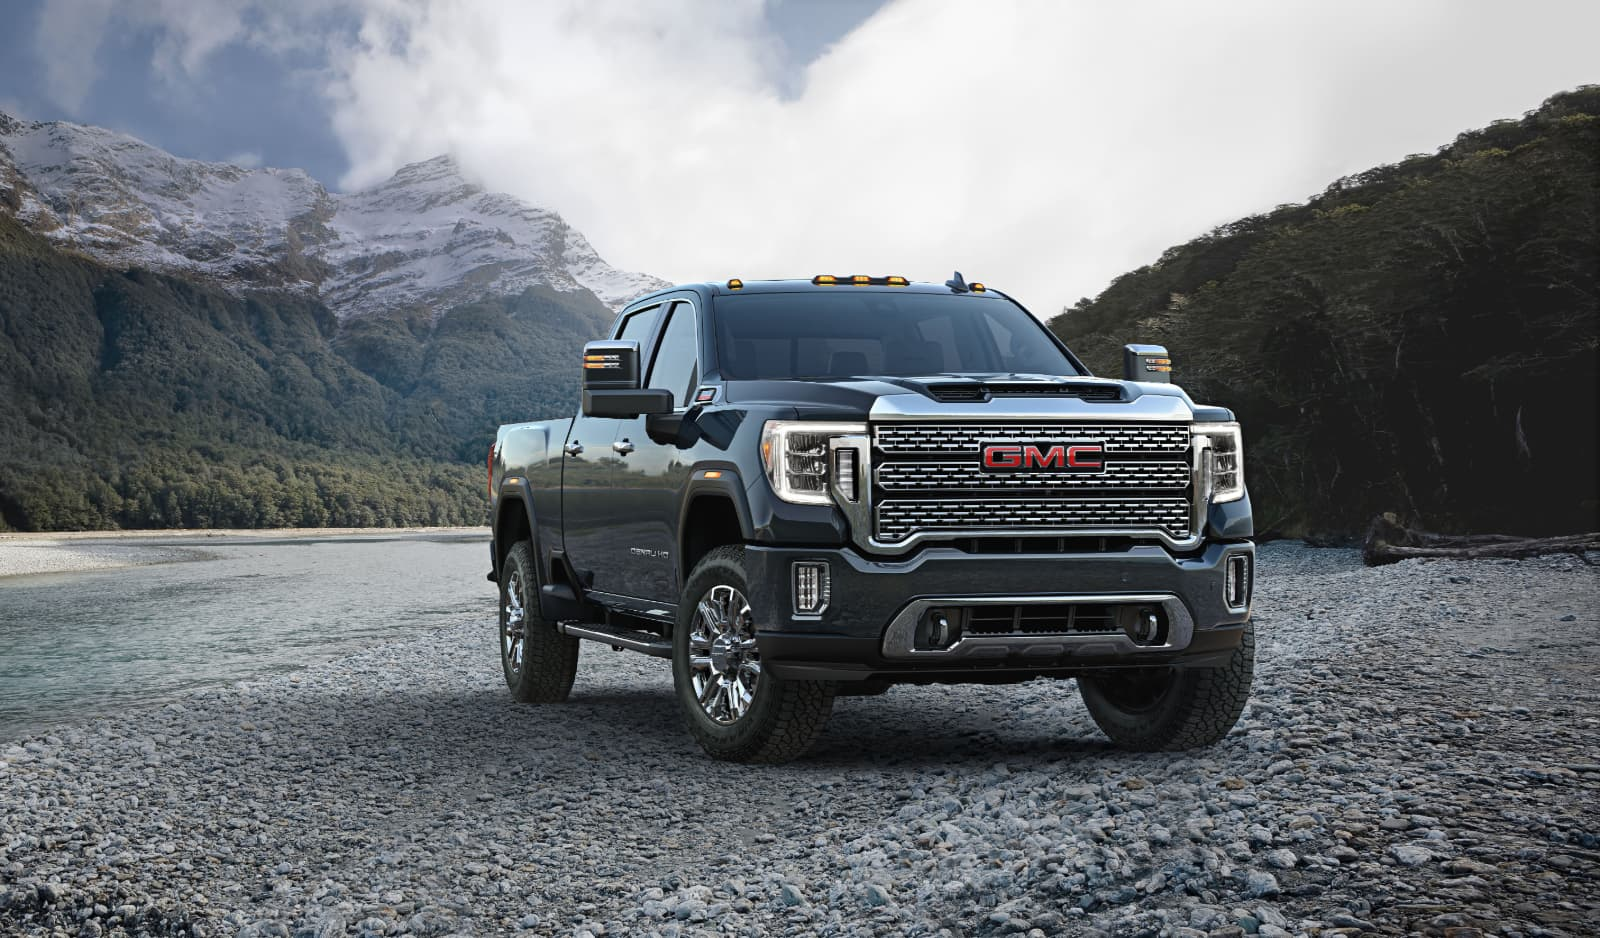 GMC 2020 Sierra Heavy Duty pickup truck